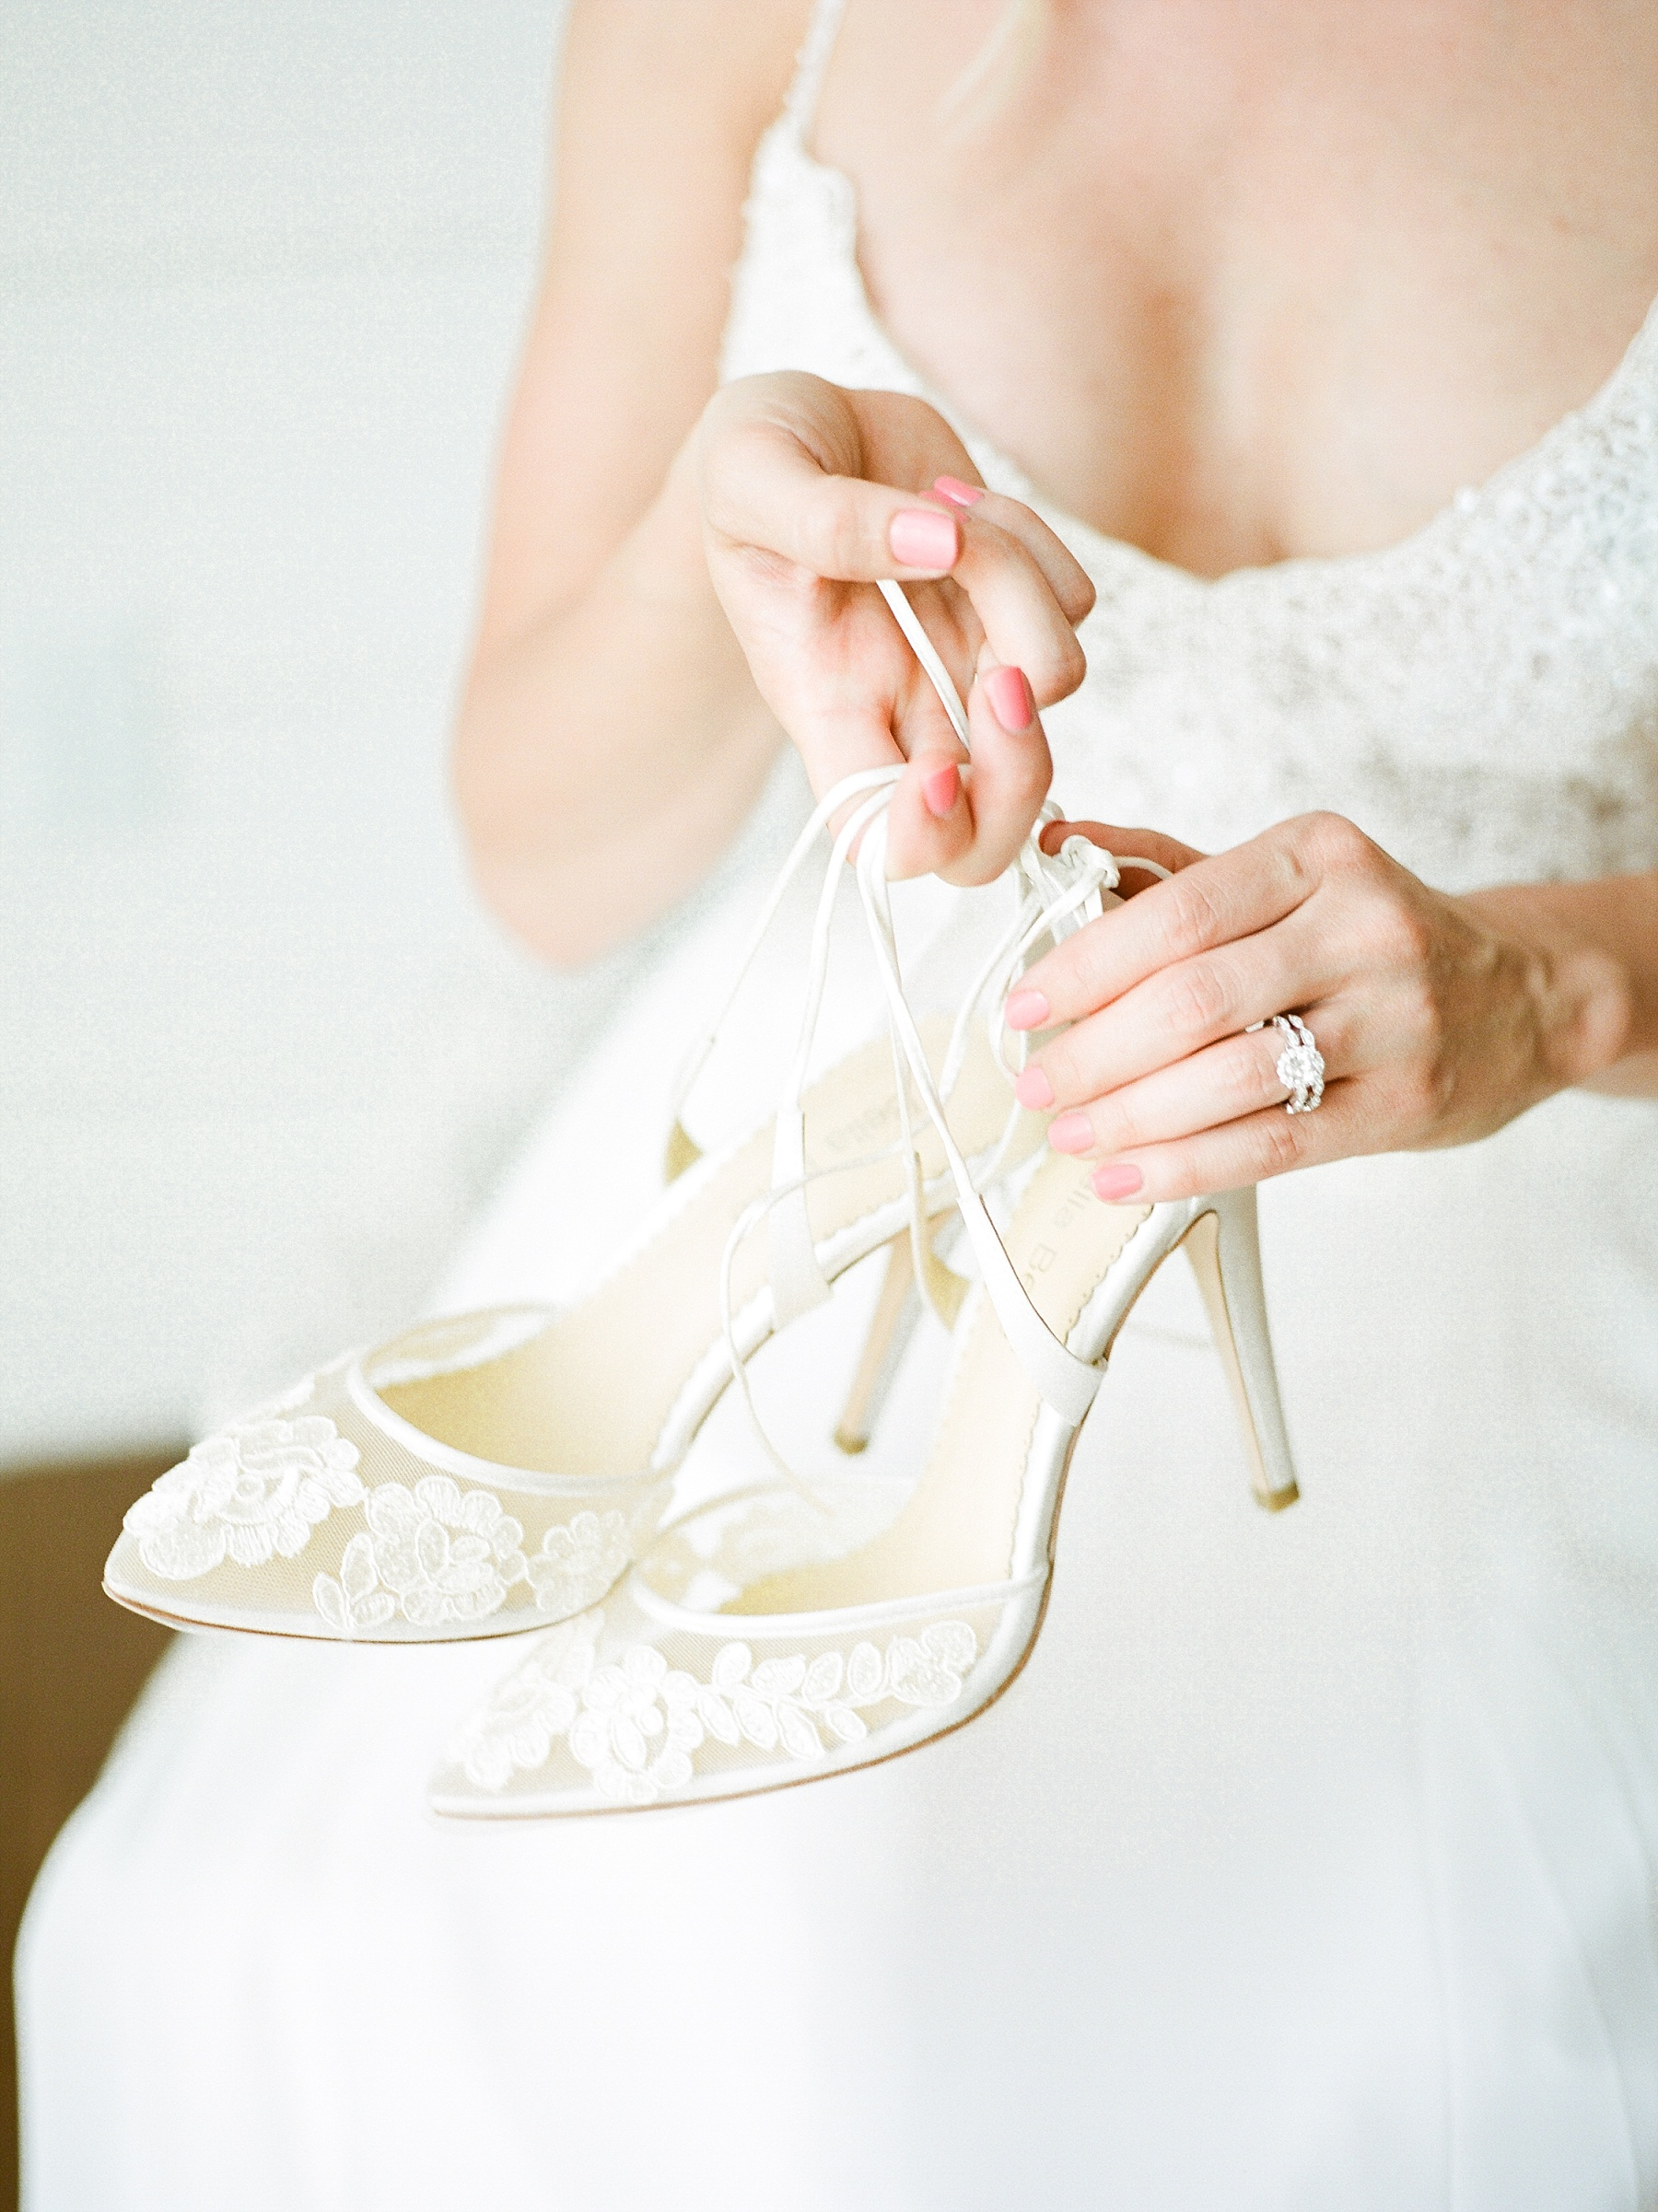 Textural Organic Wedding in All White Venue by Kelsi Kliethermes Wedding Photographer - Missouri, Midwest, and Destinations_0025.jpg